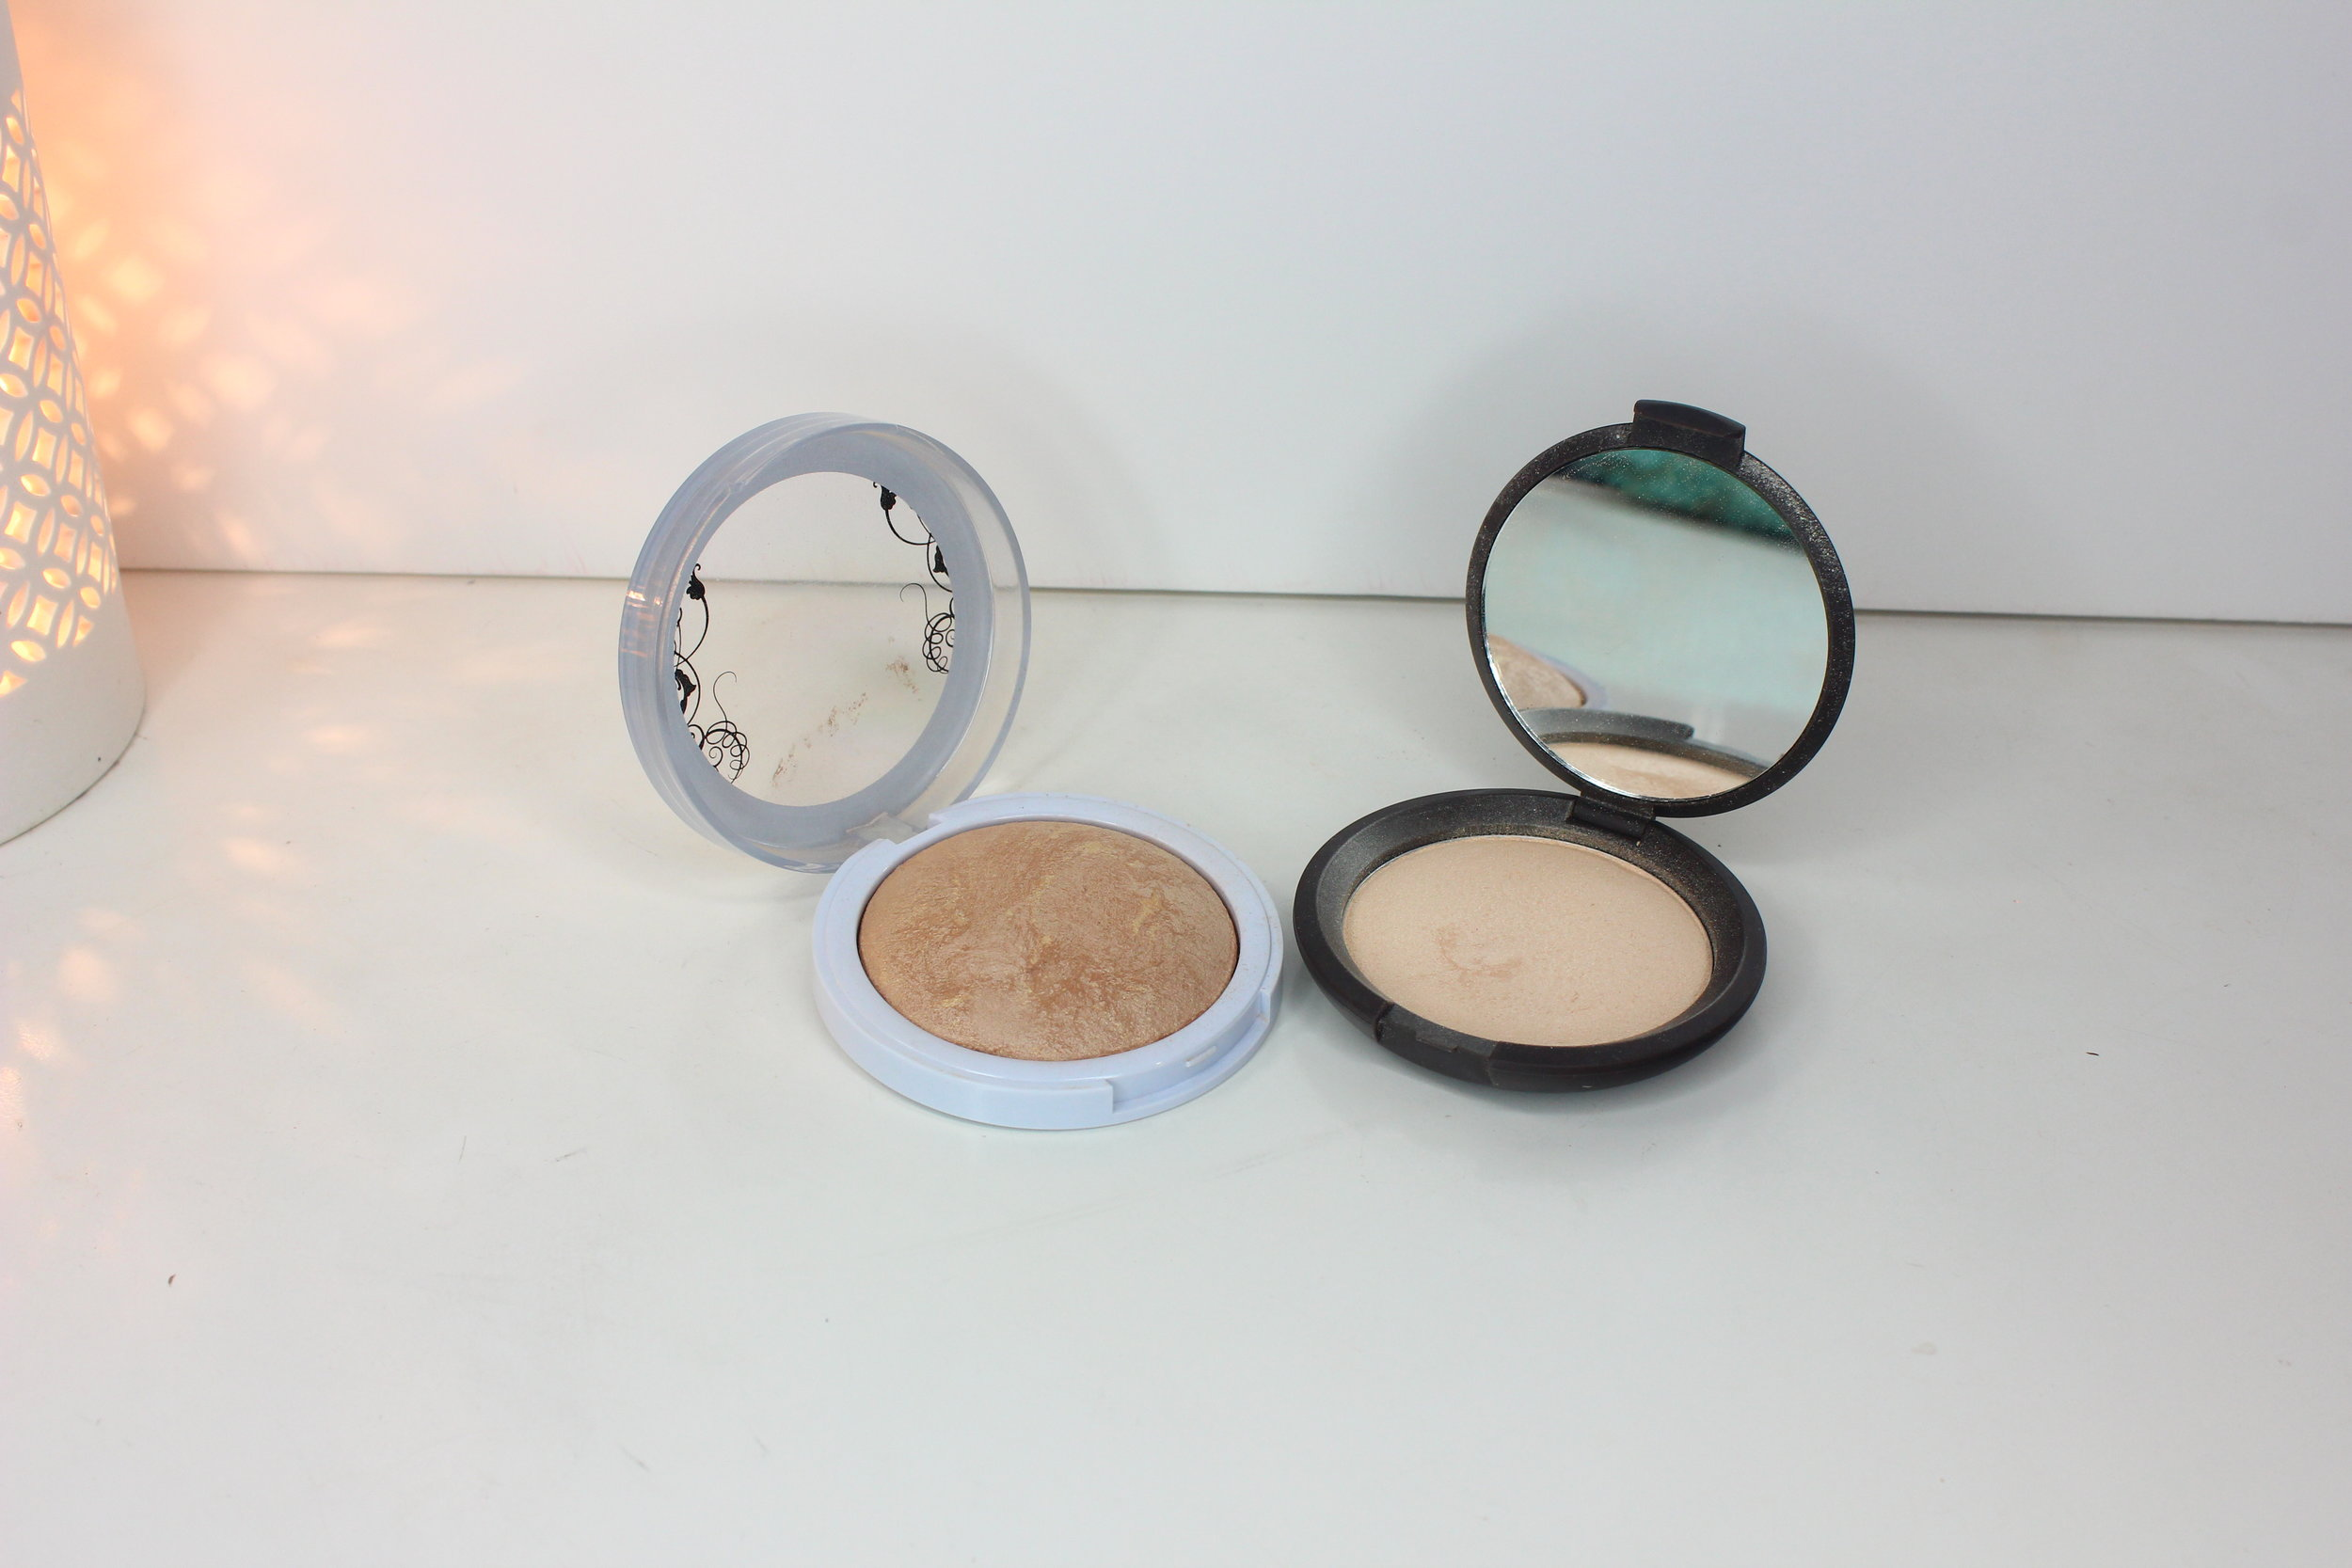 sweat-proof makeup - highlighters